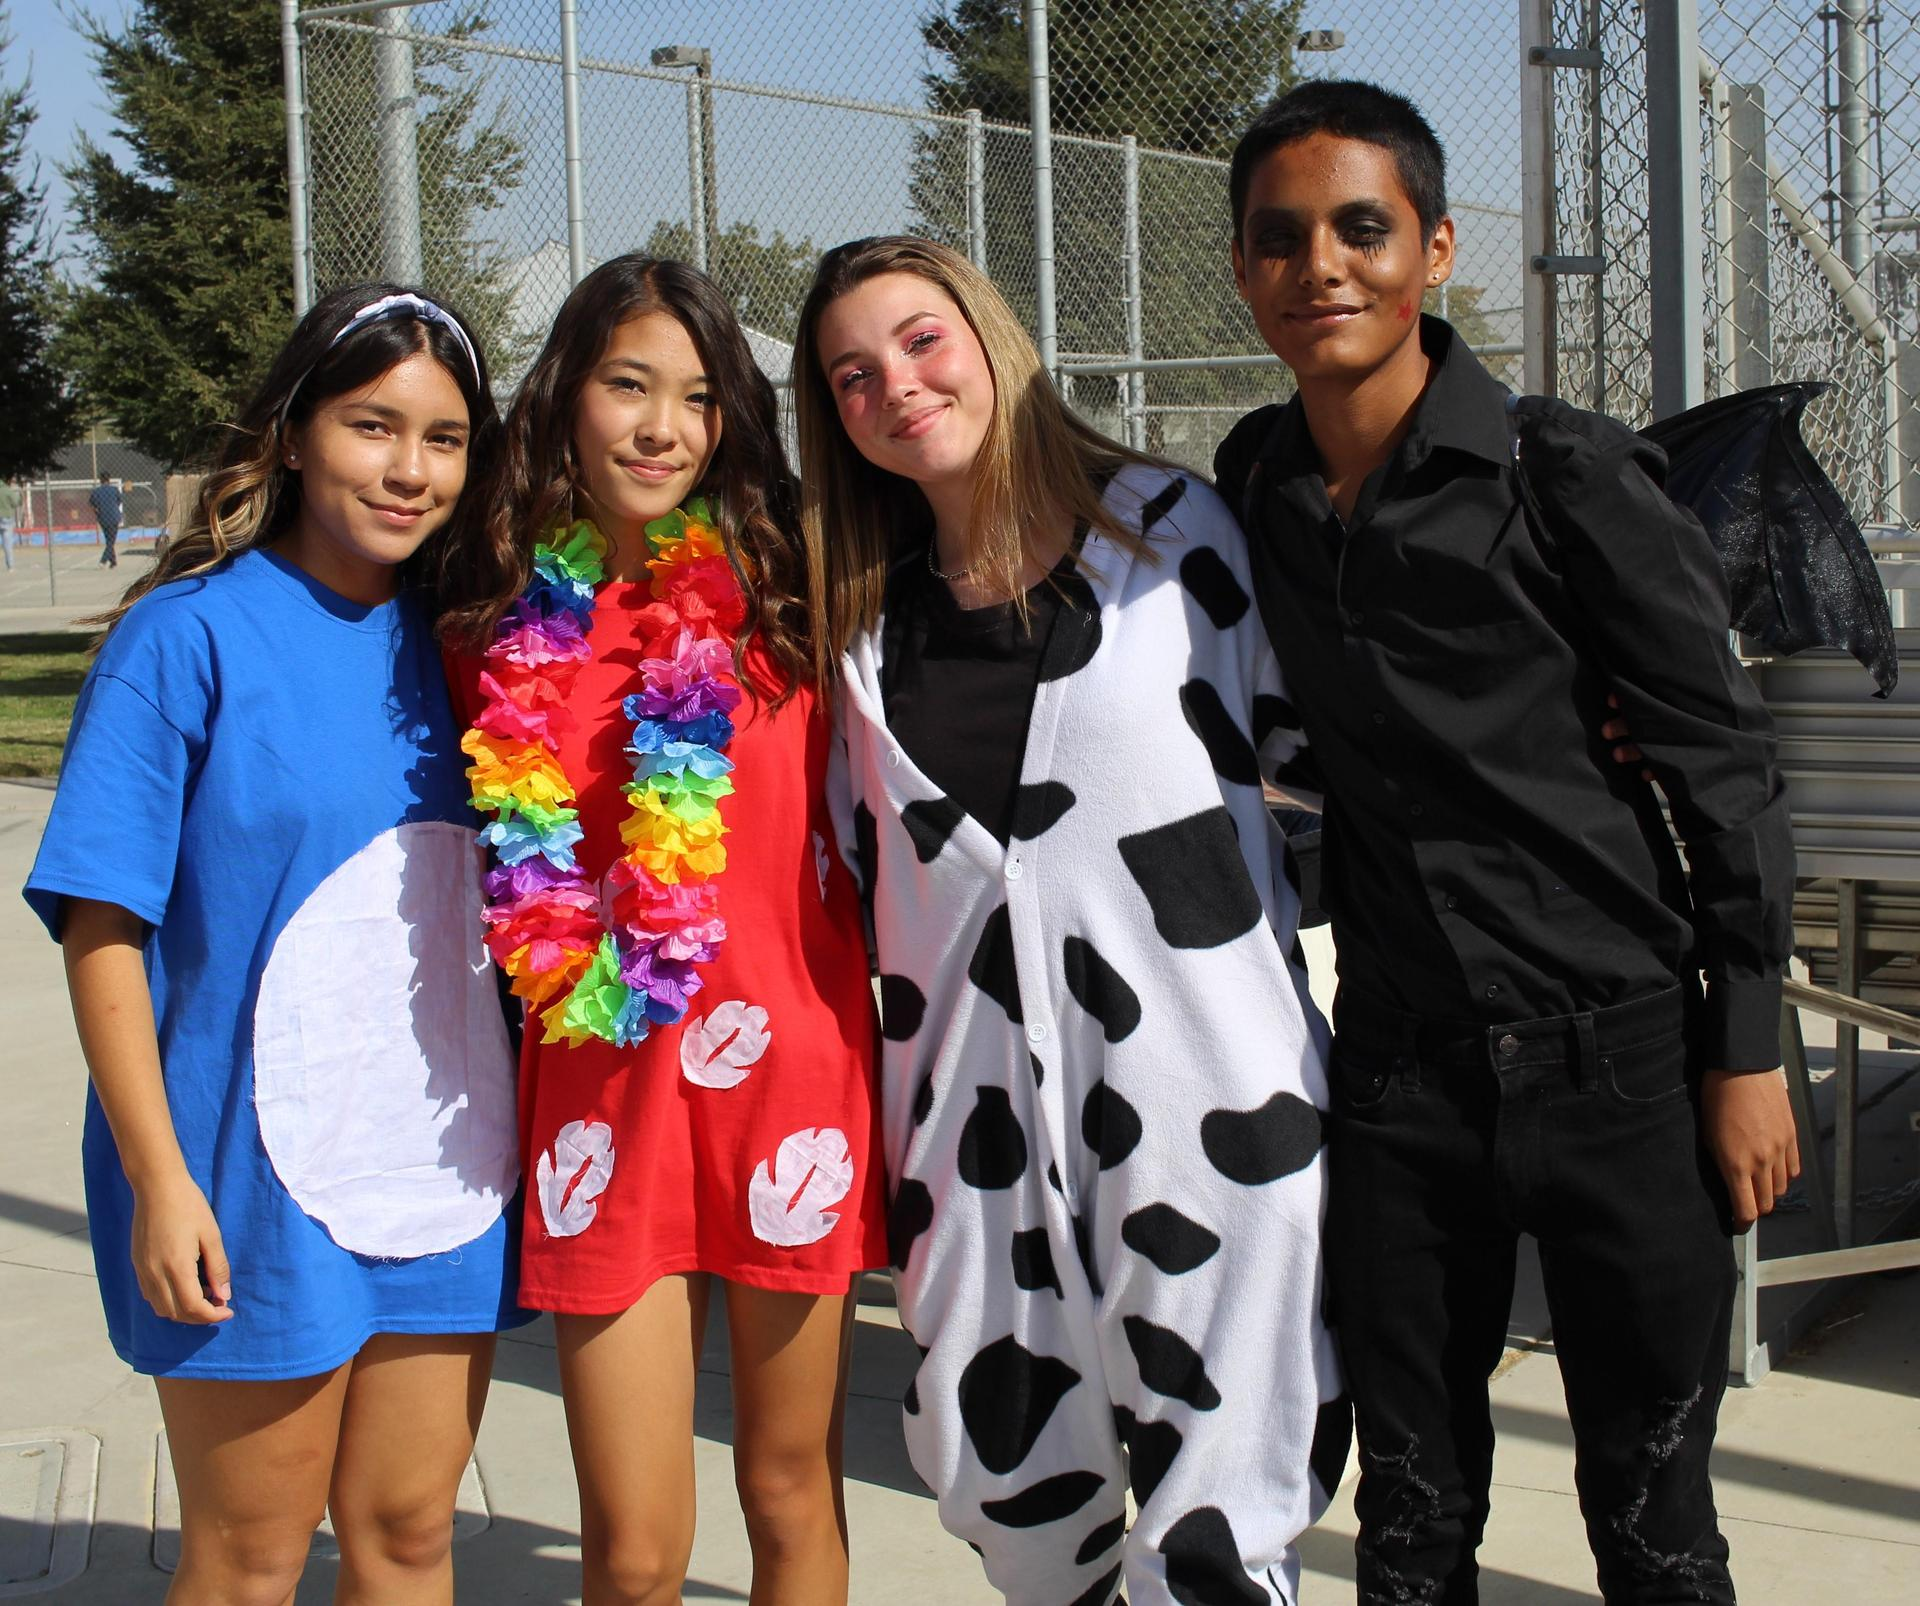 Liz Lopez as Stitch, Kanami Wood as Lilo, Caila Adams as a Cow, Sebastian Vega a Vampire